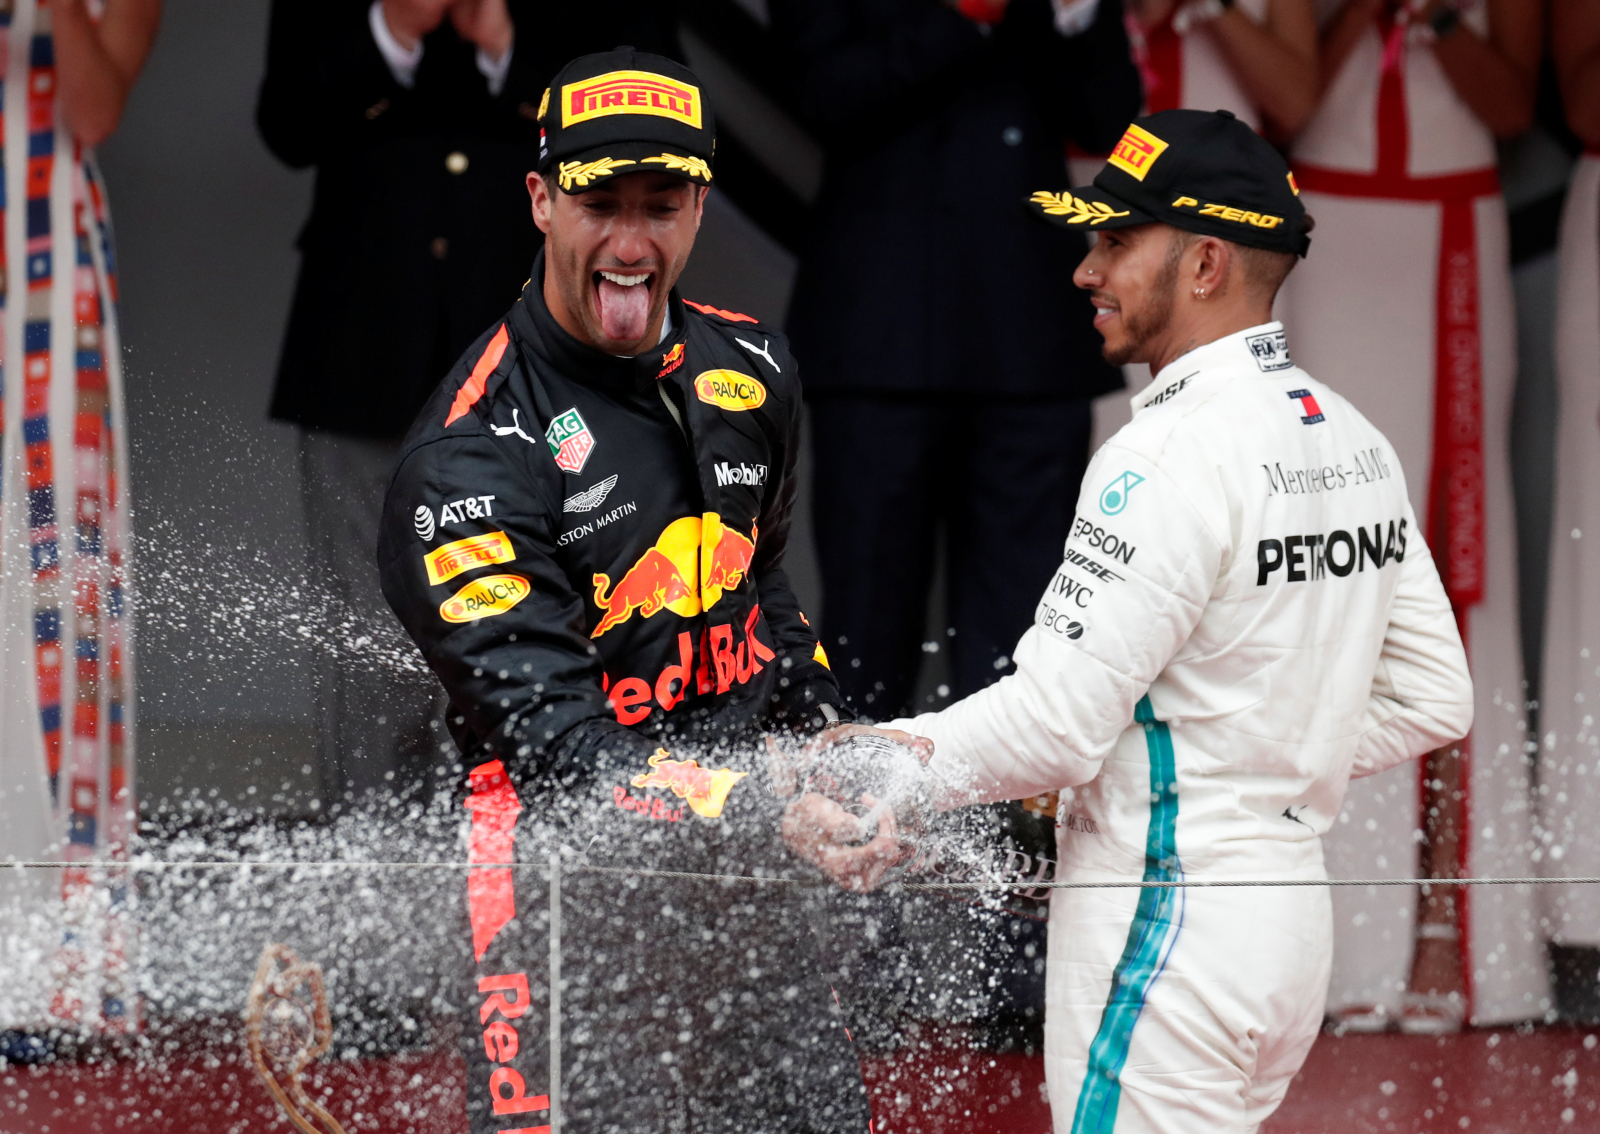 f1 mexican gp final day of championship battle check live streaming and race details. Black Bedroom Furniture Sets. Home Design Ideas